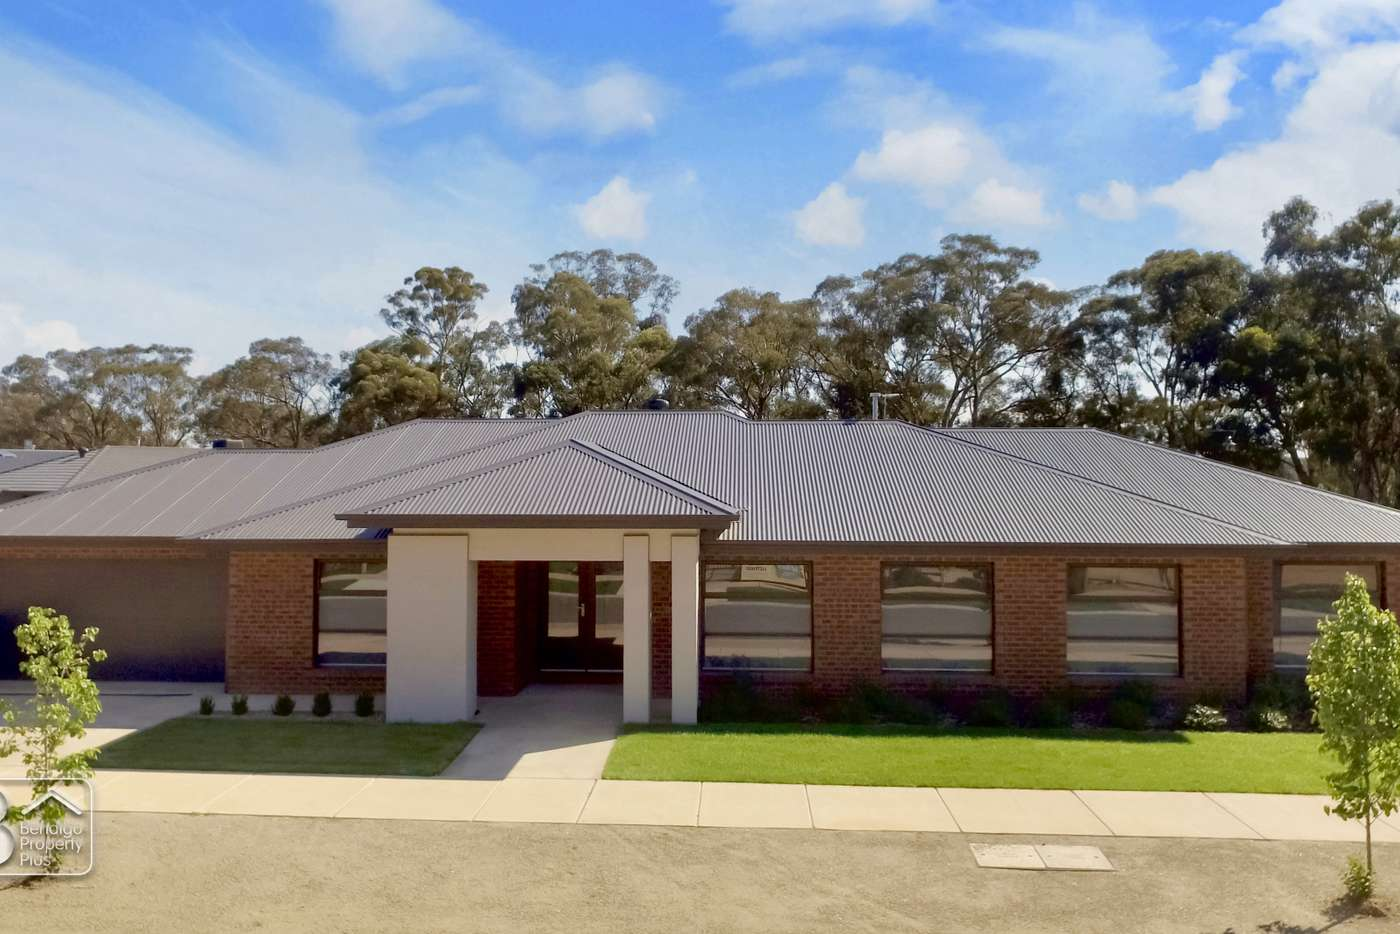 Main view of Homely house listing, 16 Pippin Grove, Maiden Gully VIC 3551